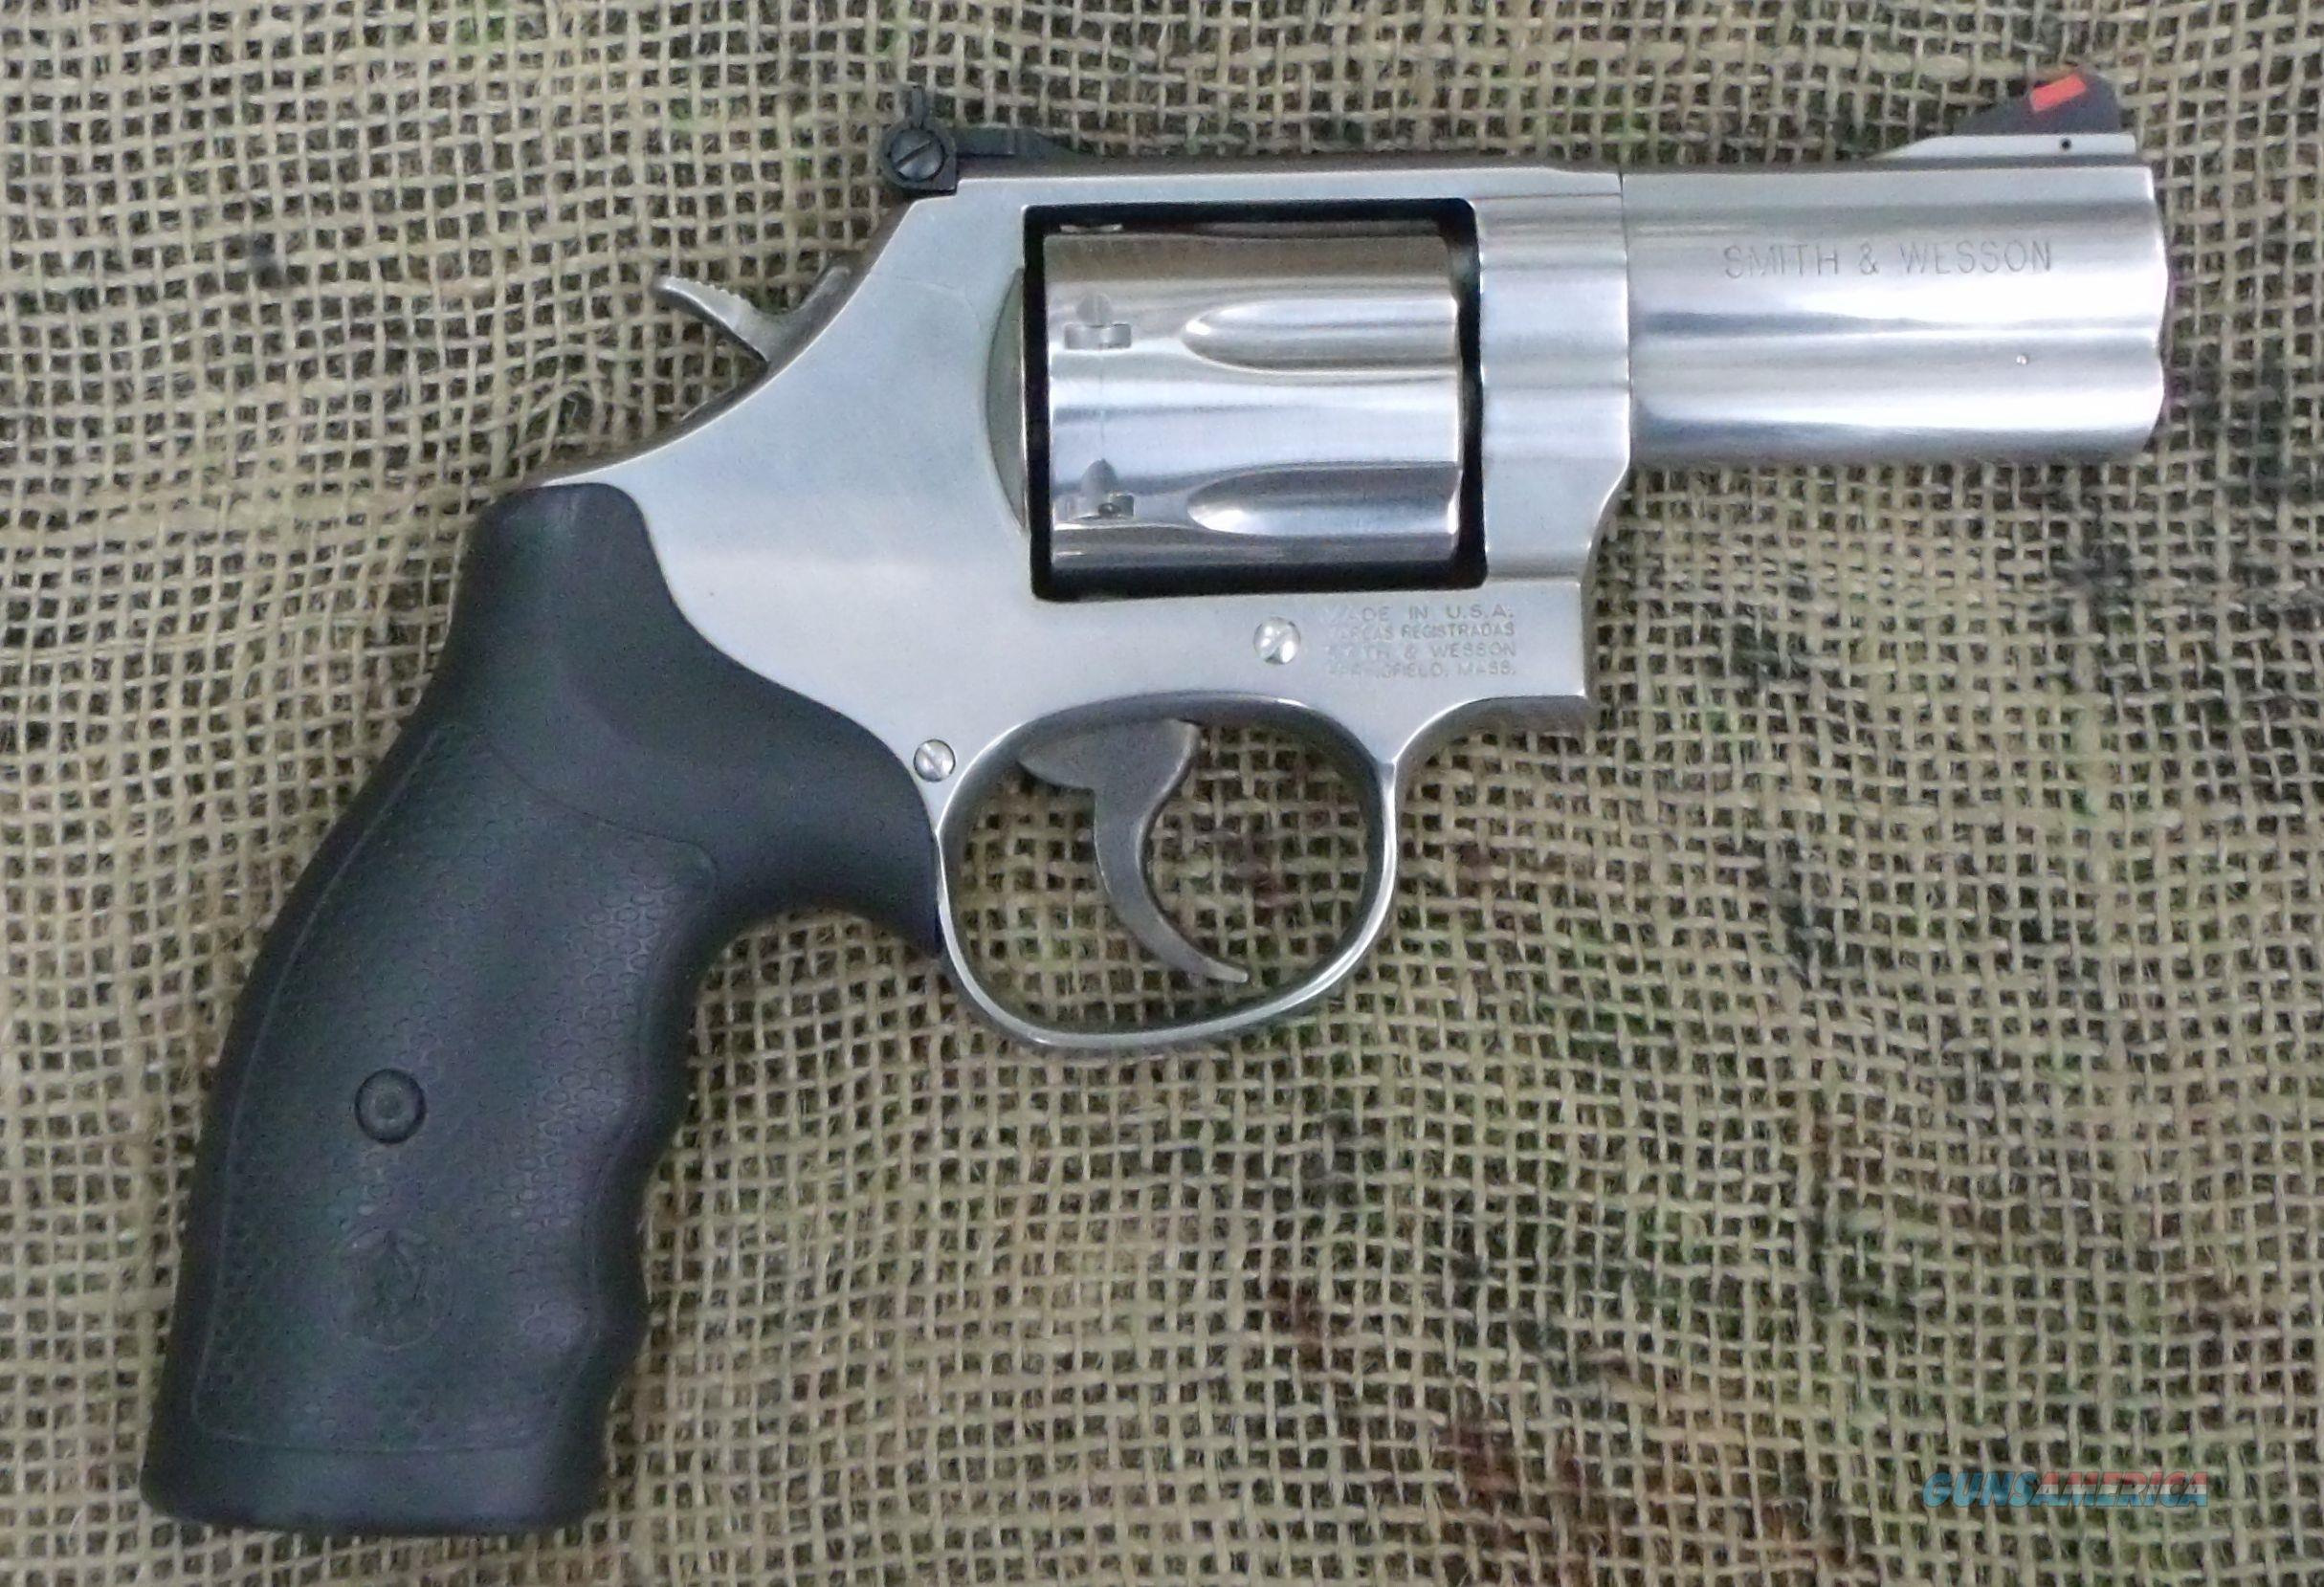 "SMITH&WESSON Model 686-8, 3"" Barrel, Stainless Steel  Guns > Pistols > Smith & Wesson Revolvers > Full Frame Revolver"